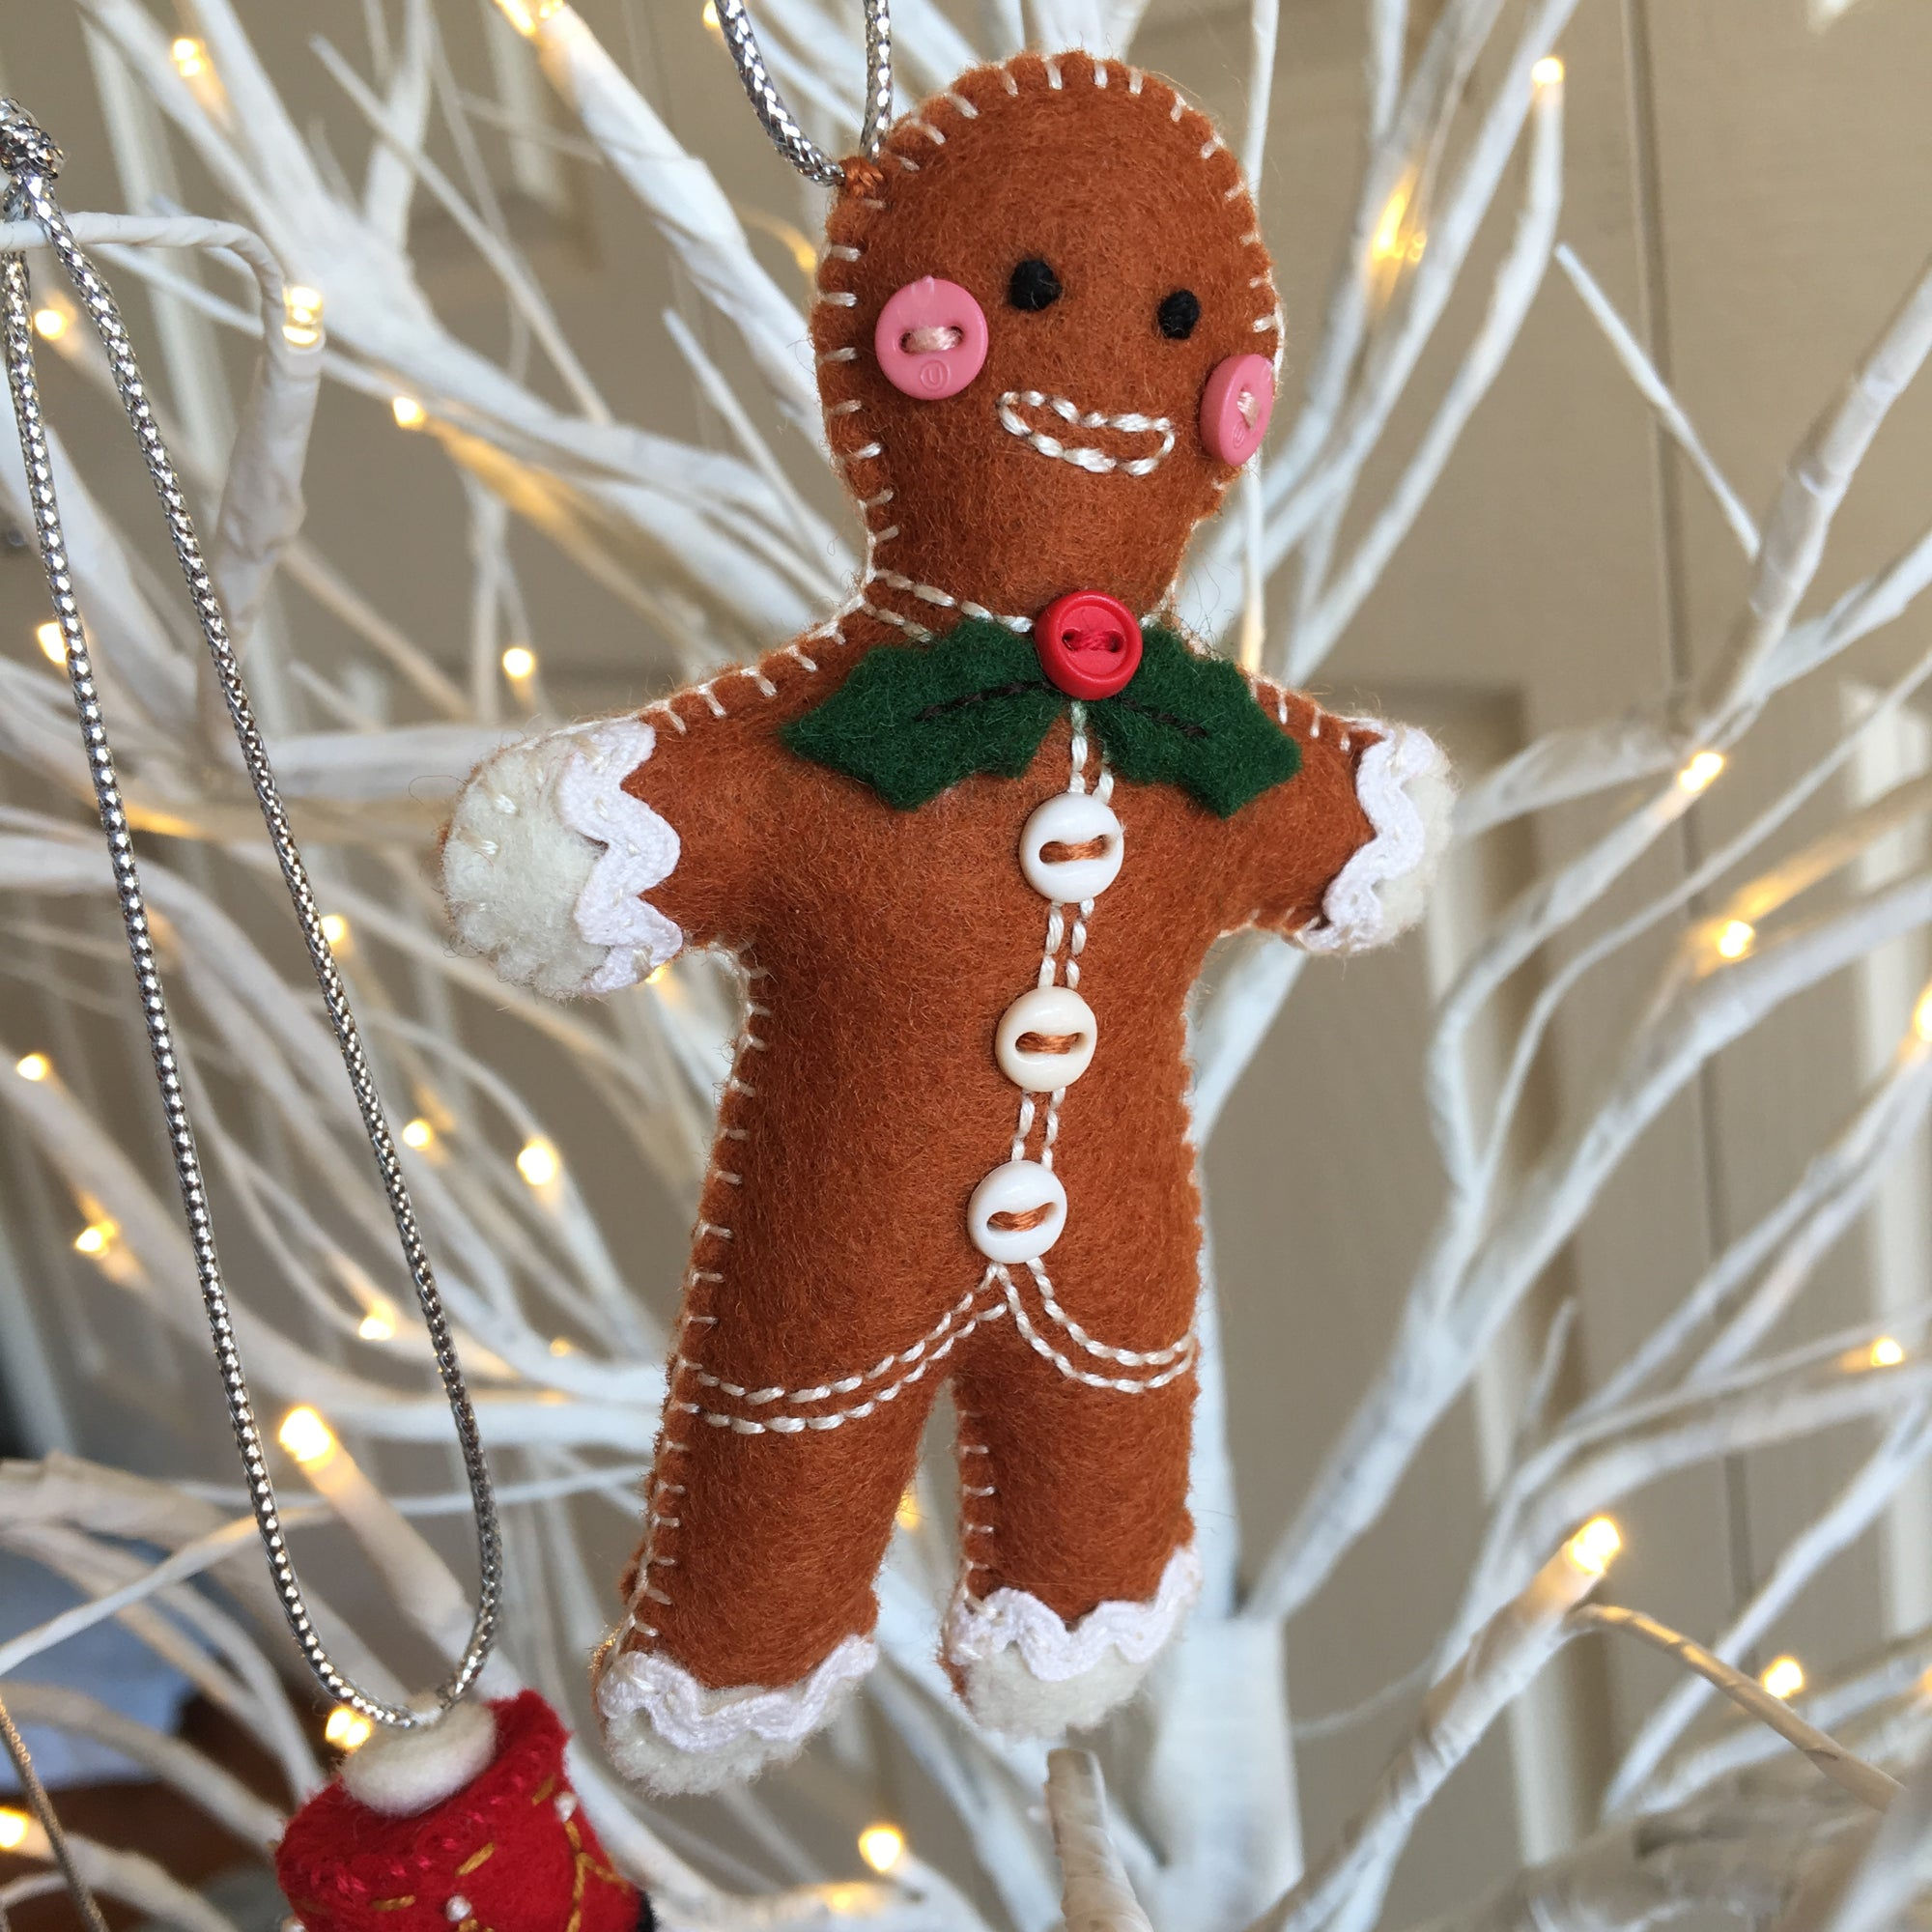 Gingerbread Man Limited Edition Kit by Caroselle Design